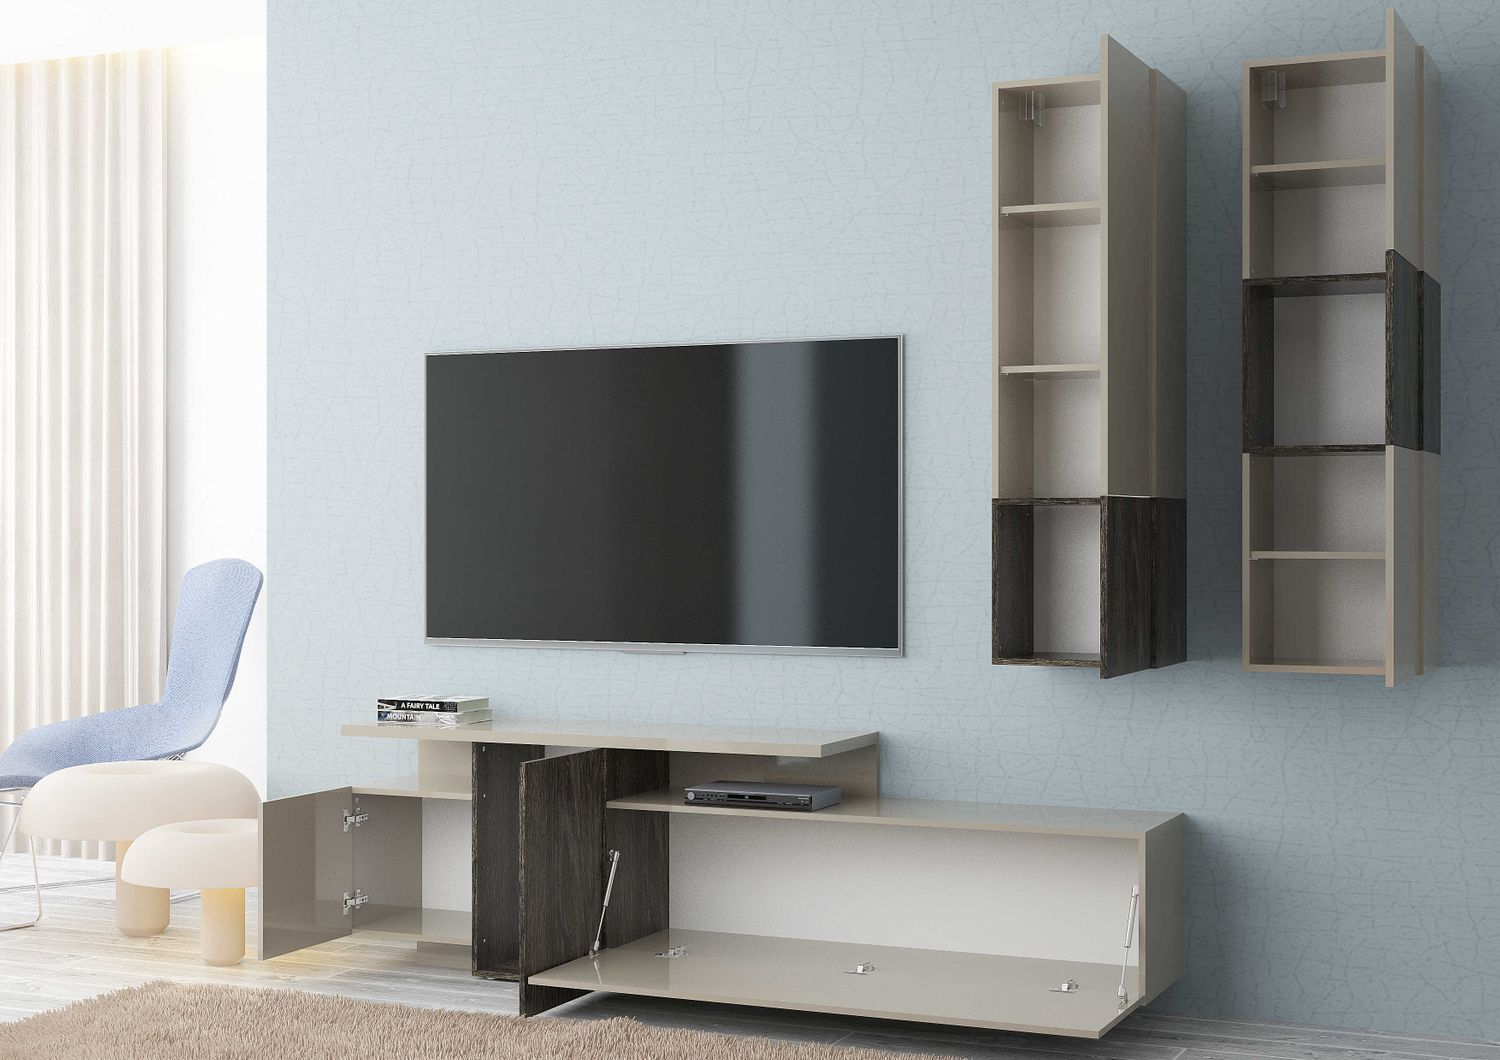 tecnos wohnwand maggiore 3 tlg sandfarben hochglanz buchefarben dunkel. Black Bedroom Furniture Sets. Home Design Ideas